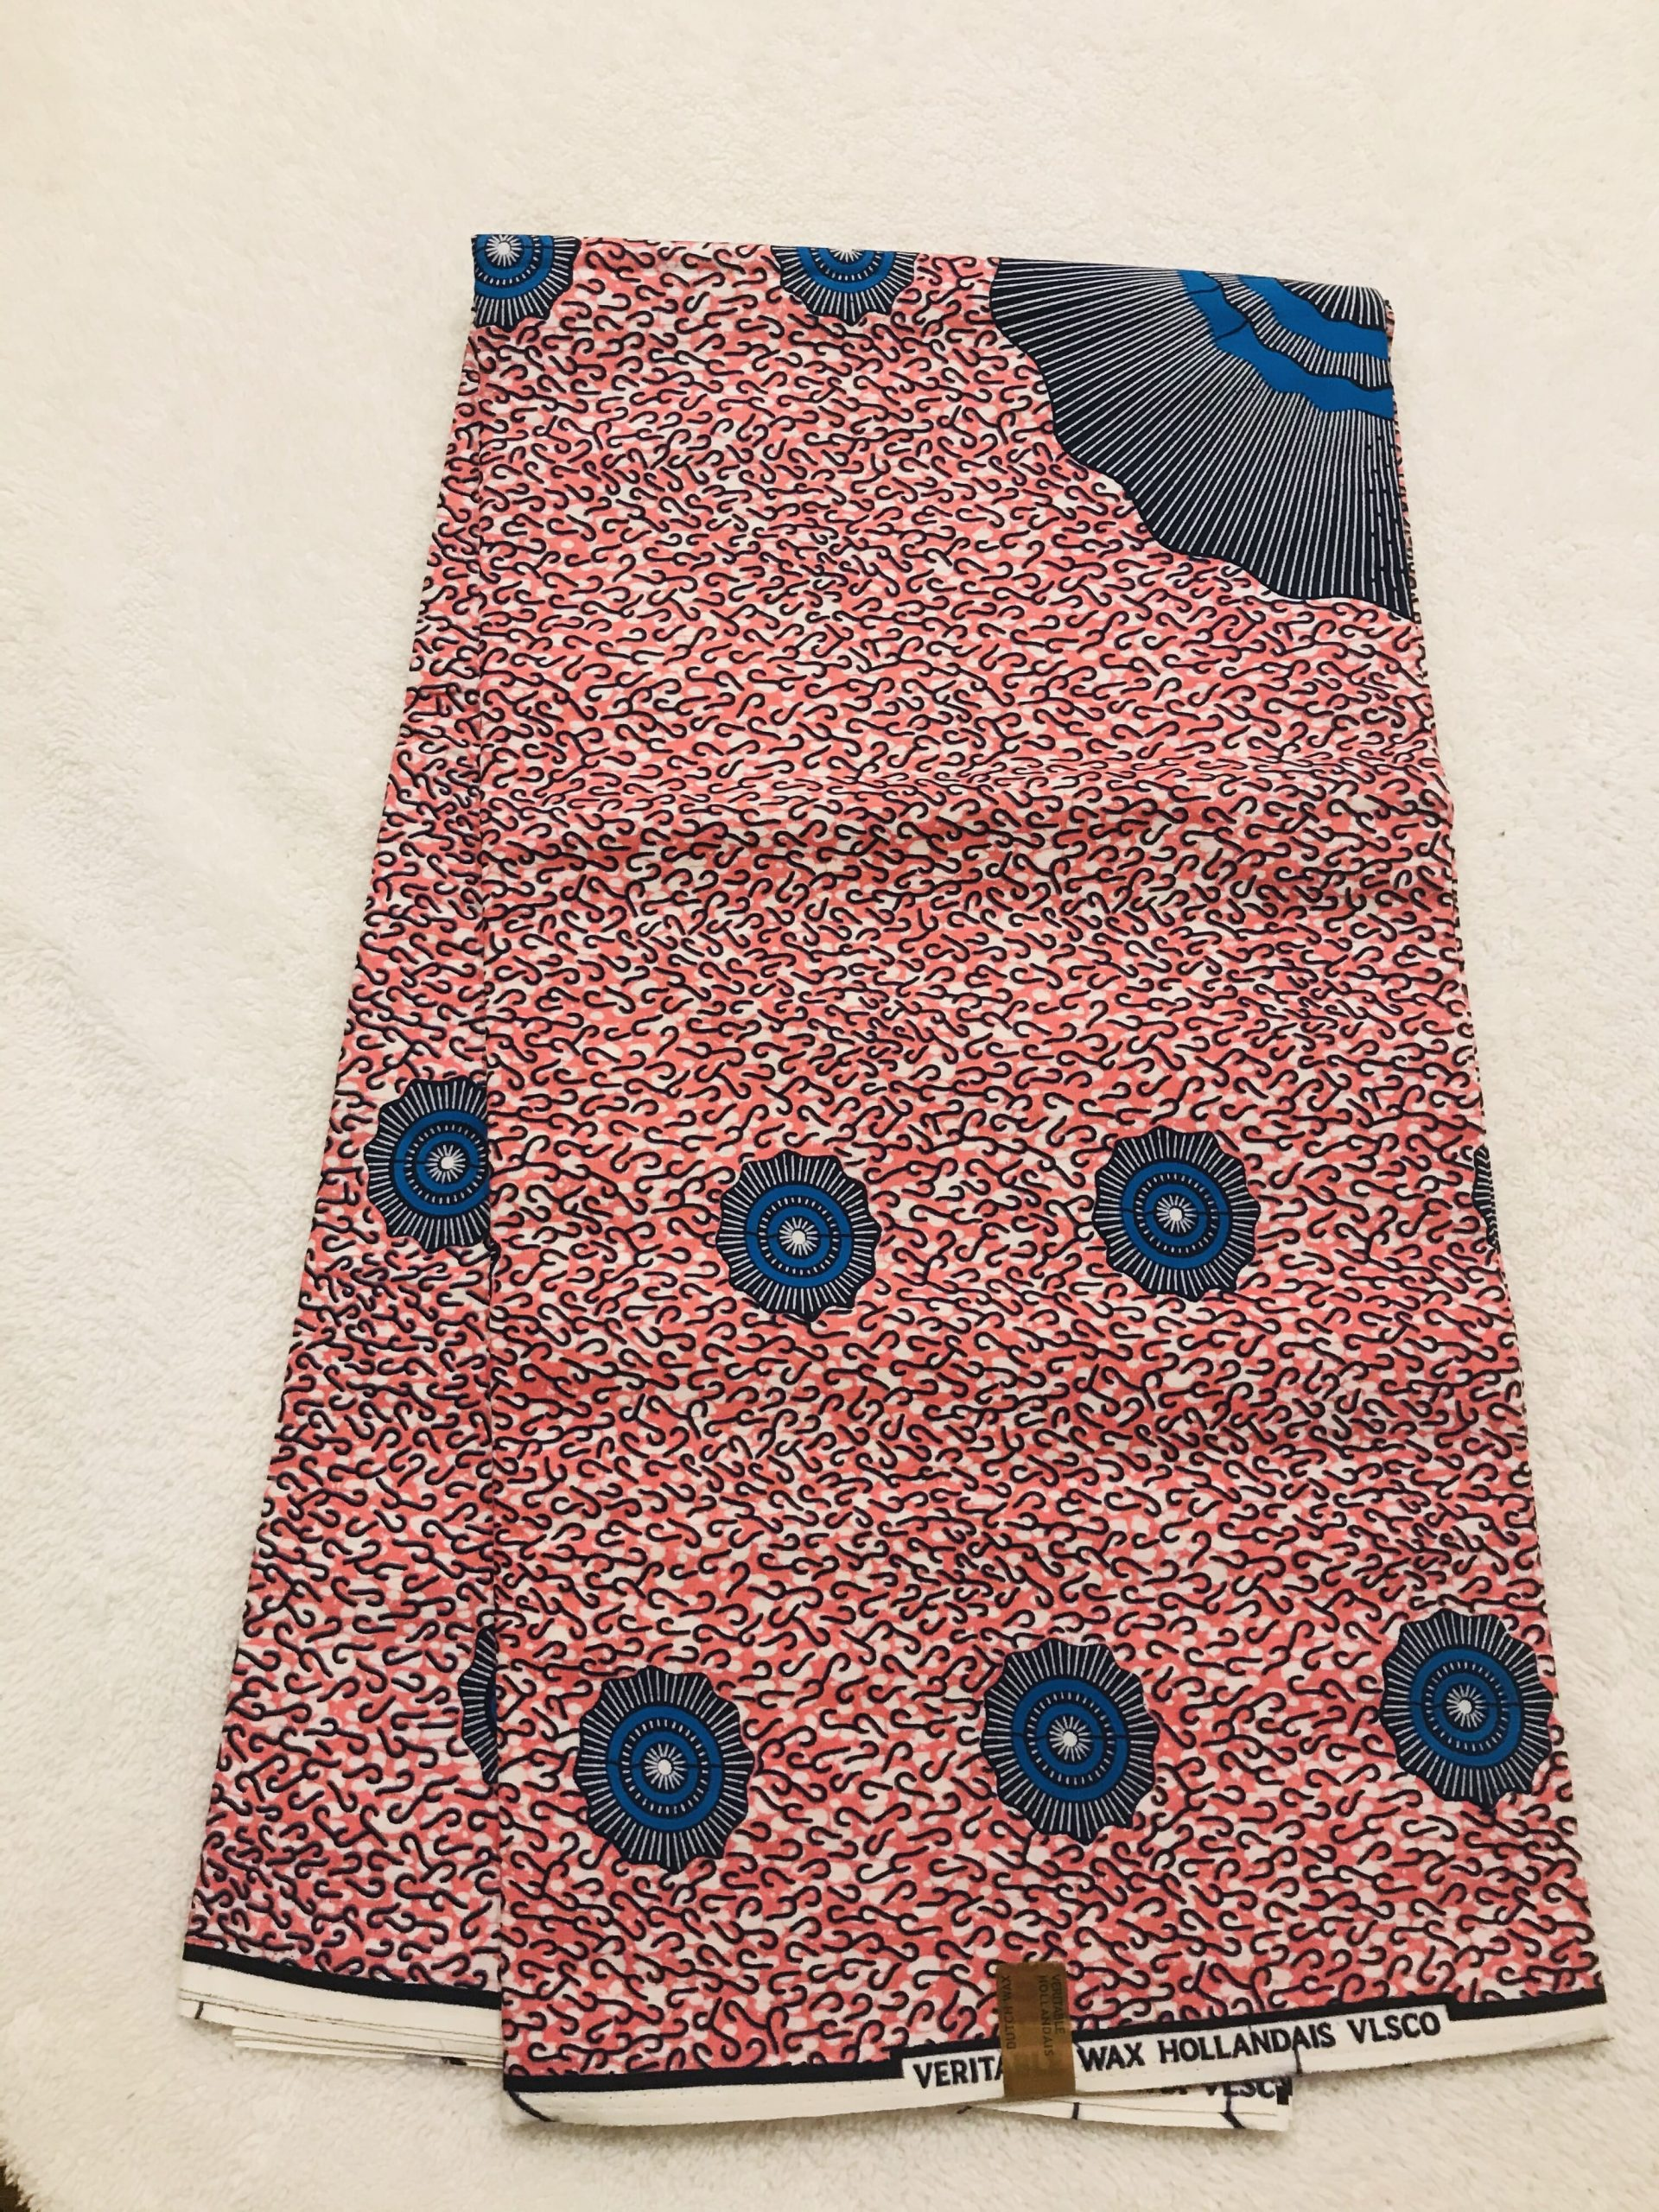 African Wax6 yards pink gray and royal blue eye of the storm African print. Ankanra 100% cotton material